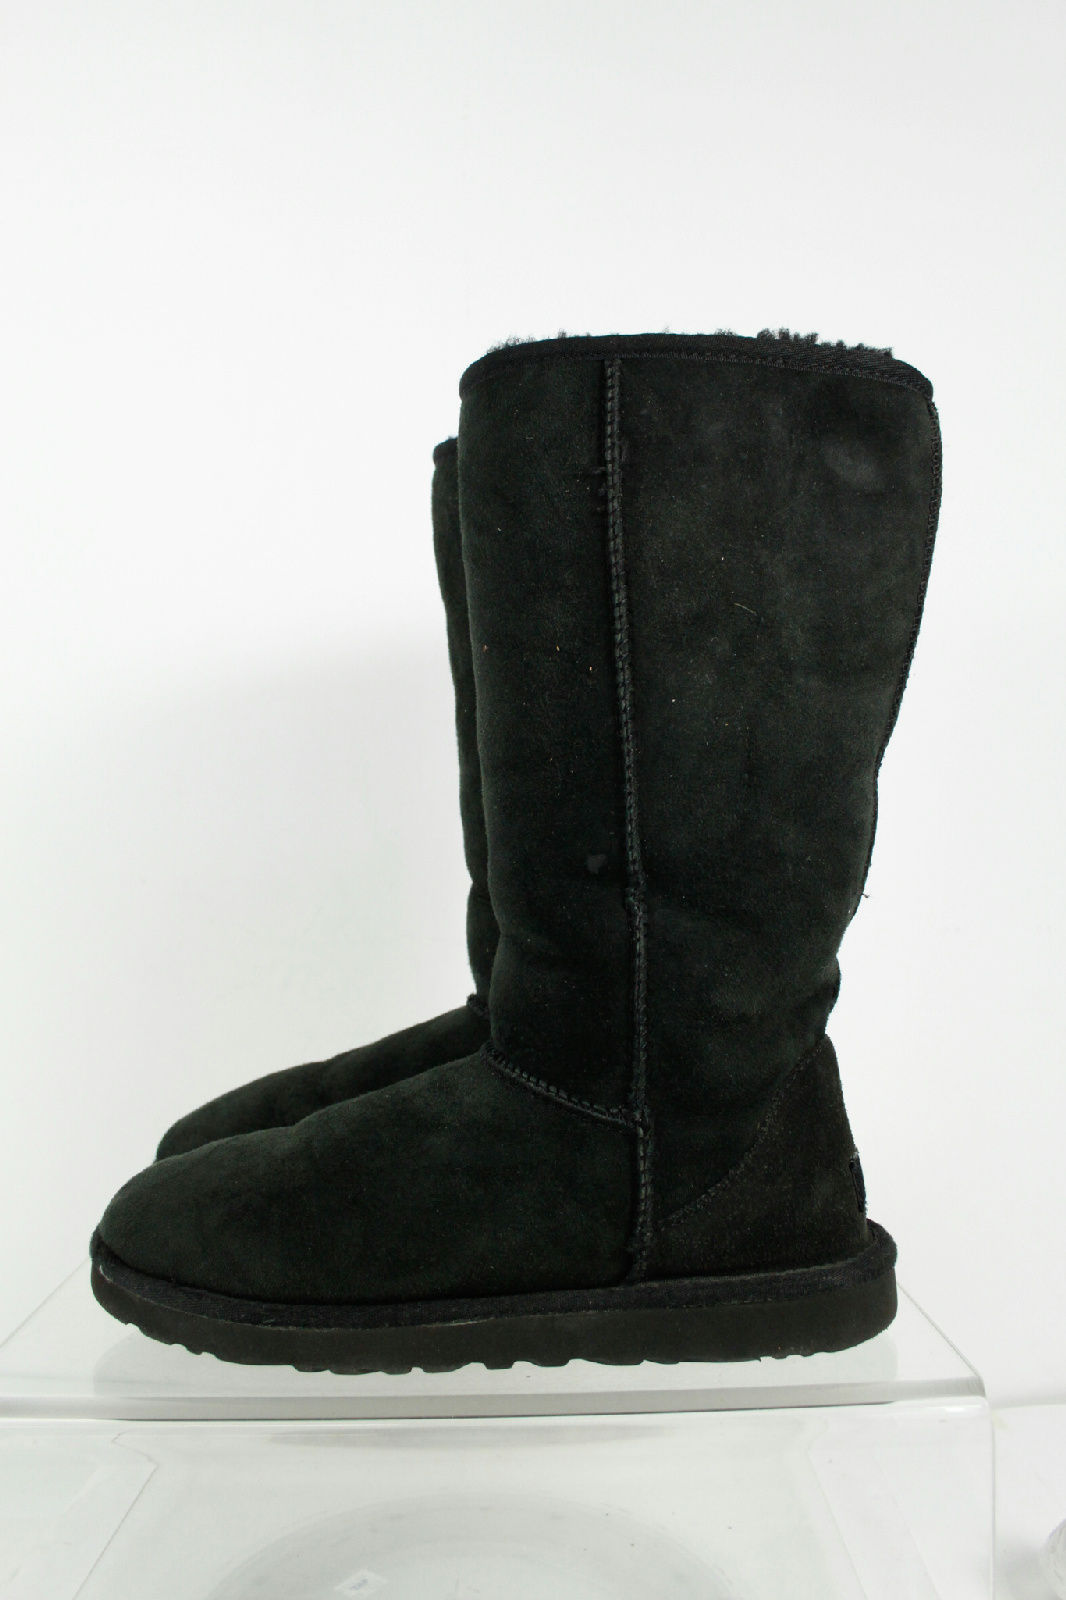 ugg black boots size 7